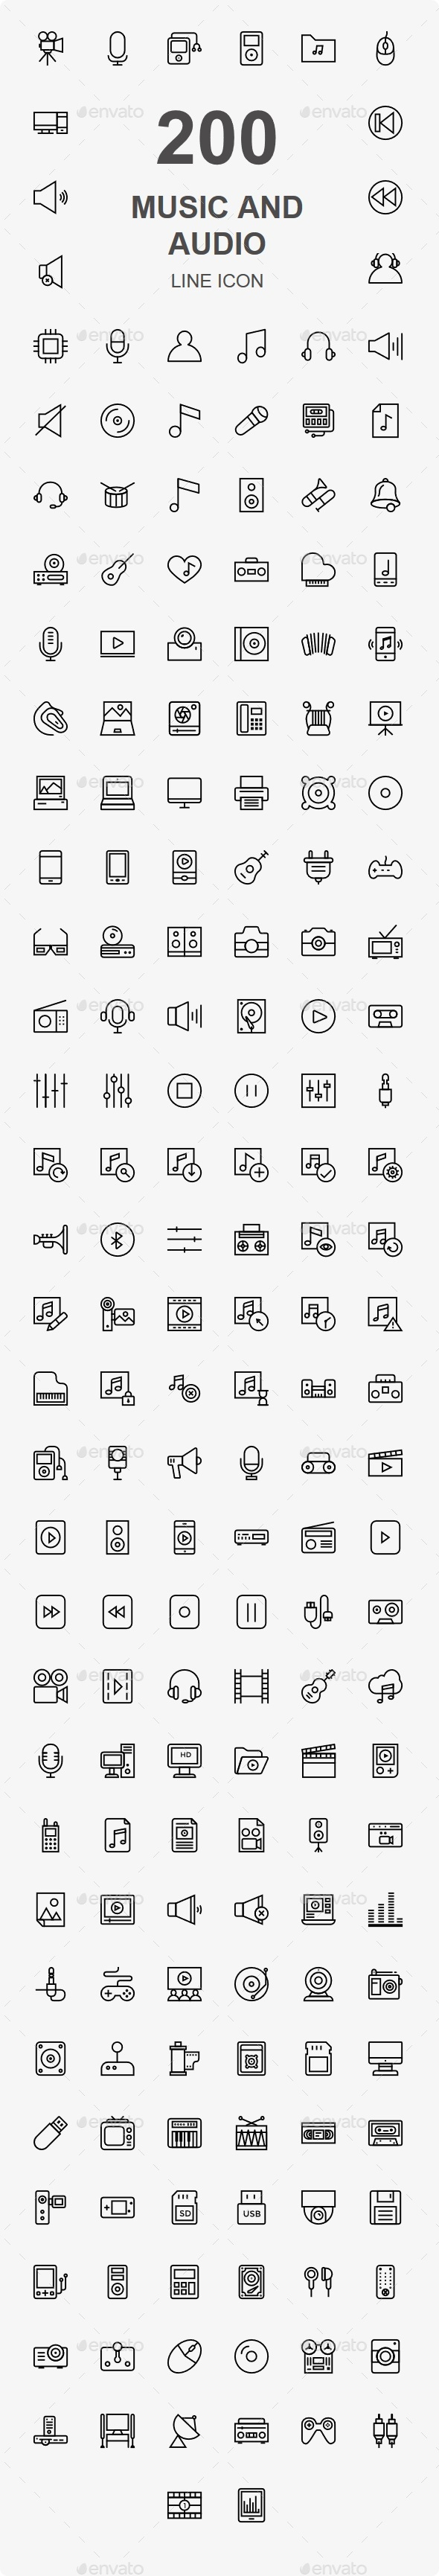 GraphicRiver 200 Music Audio Video line icons 20461372